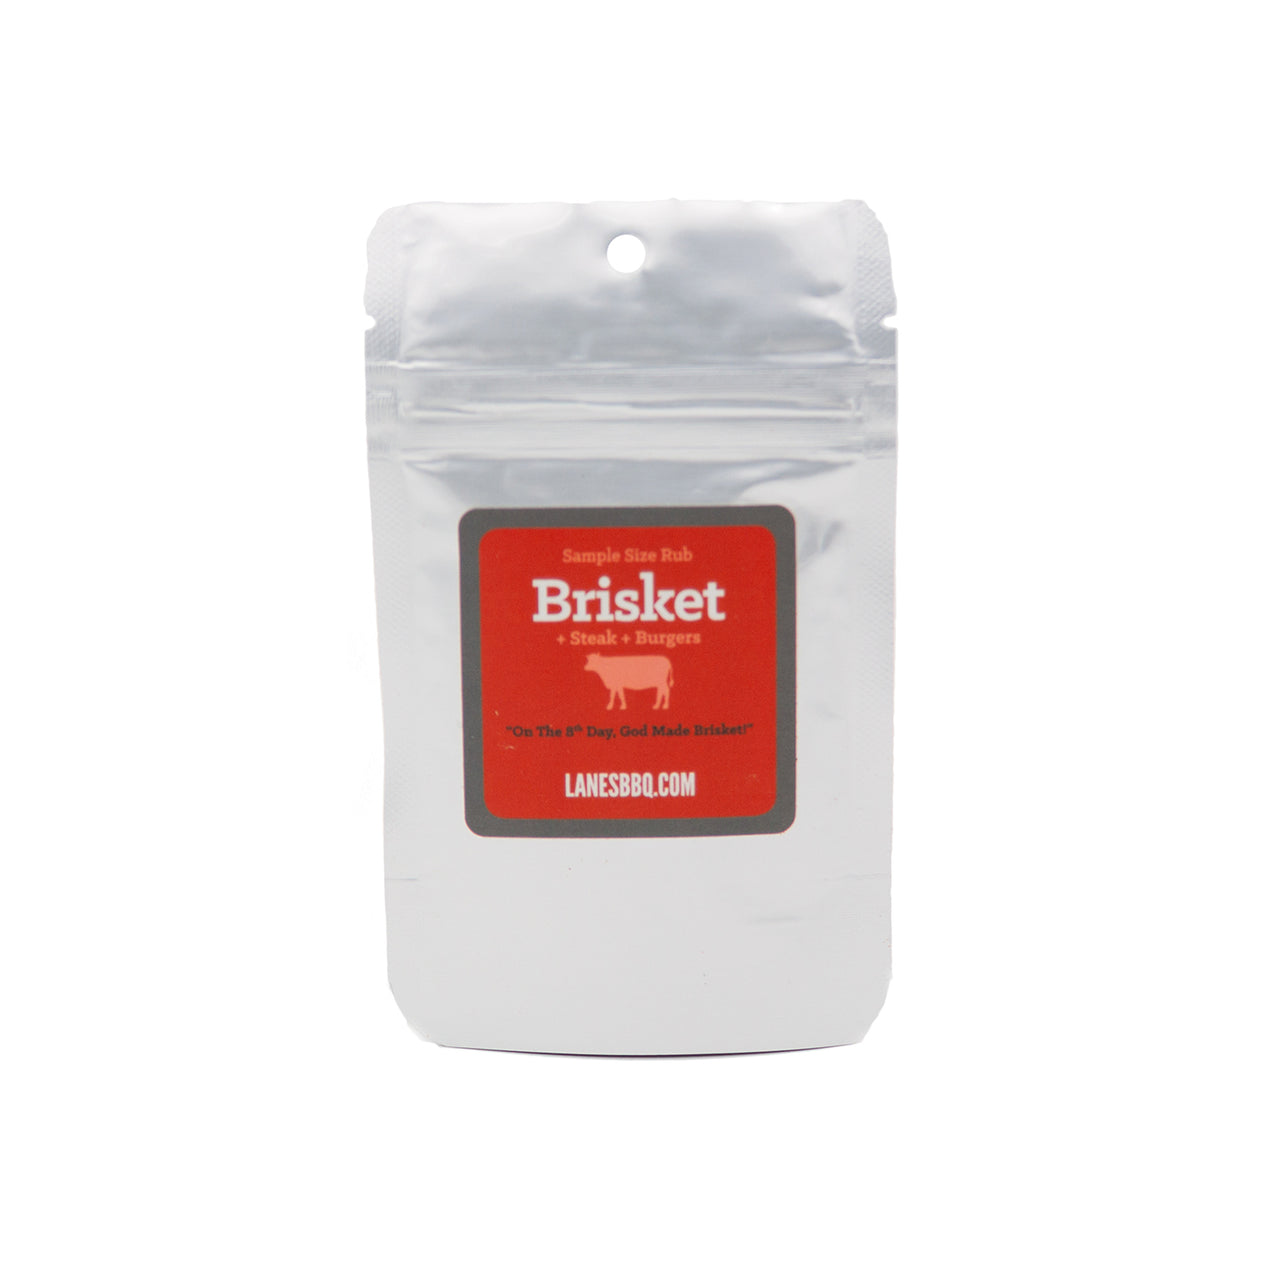 Brisket Rub - .50 oz Sample Bag